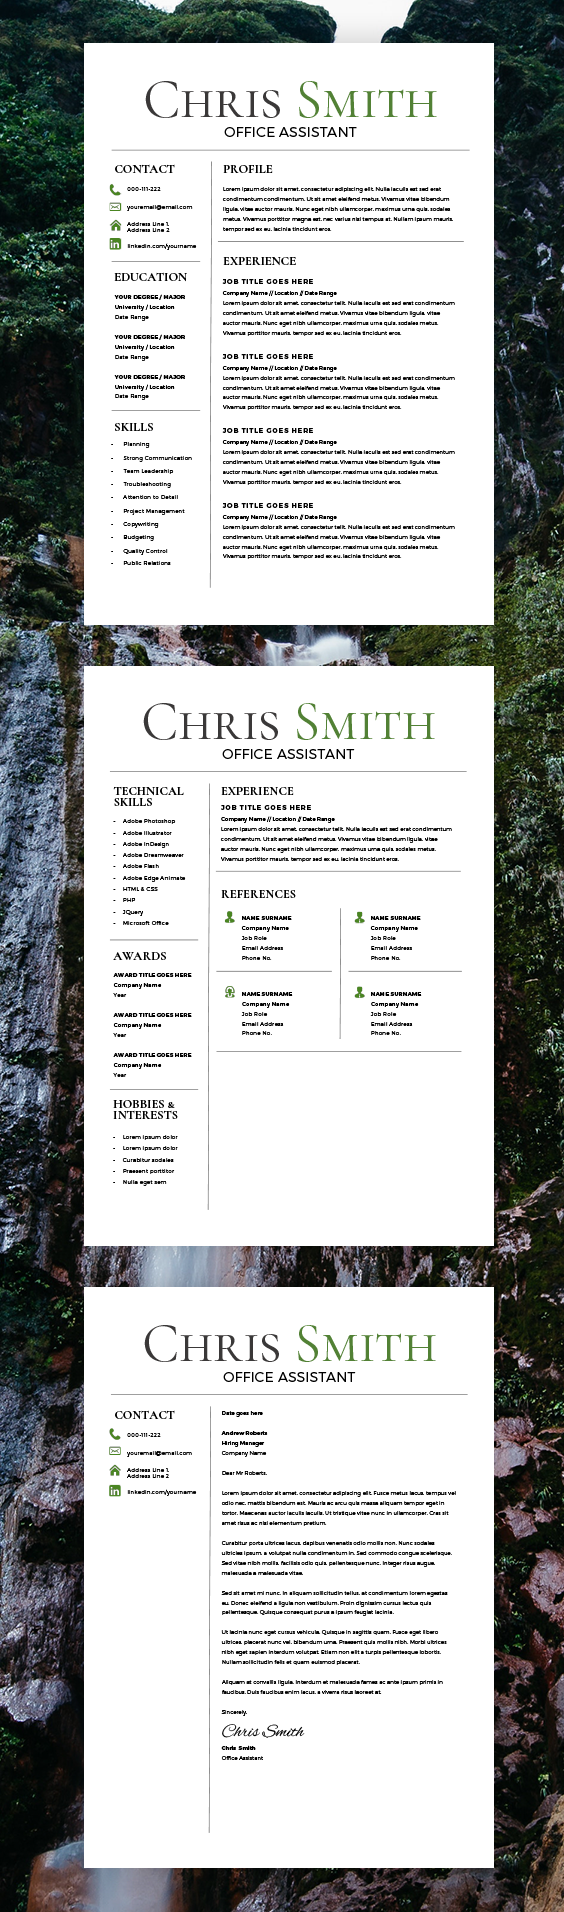 Trending Resume Template - CV Template - Free Cover Letter - MS Word ...